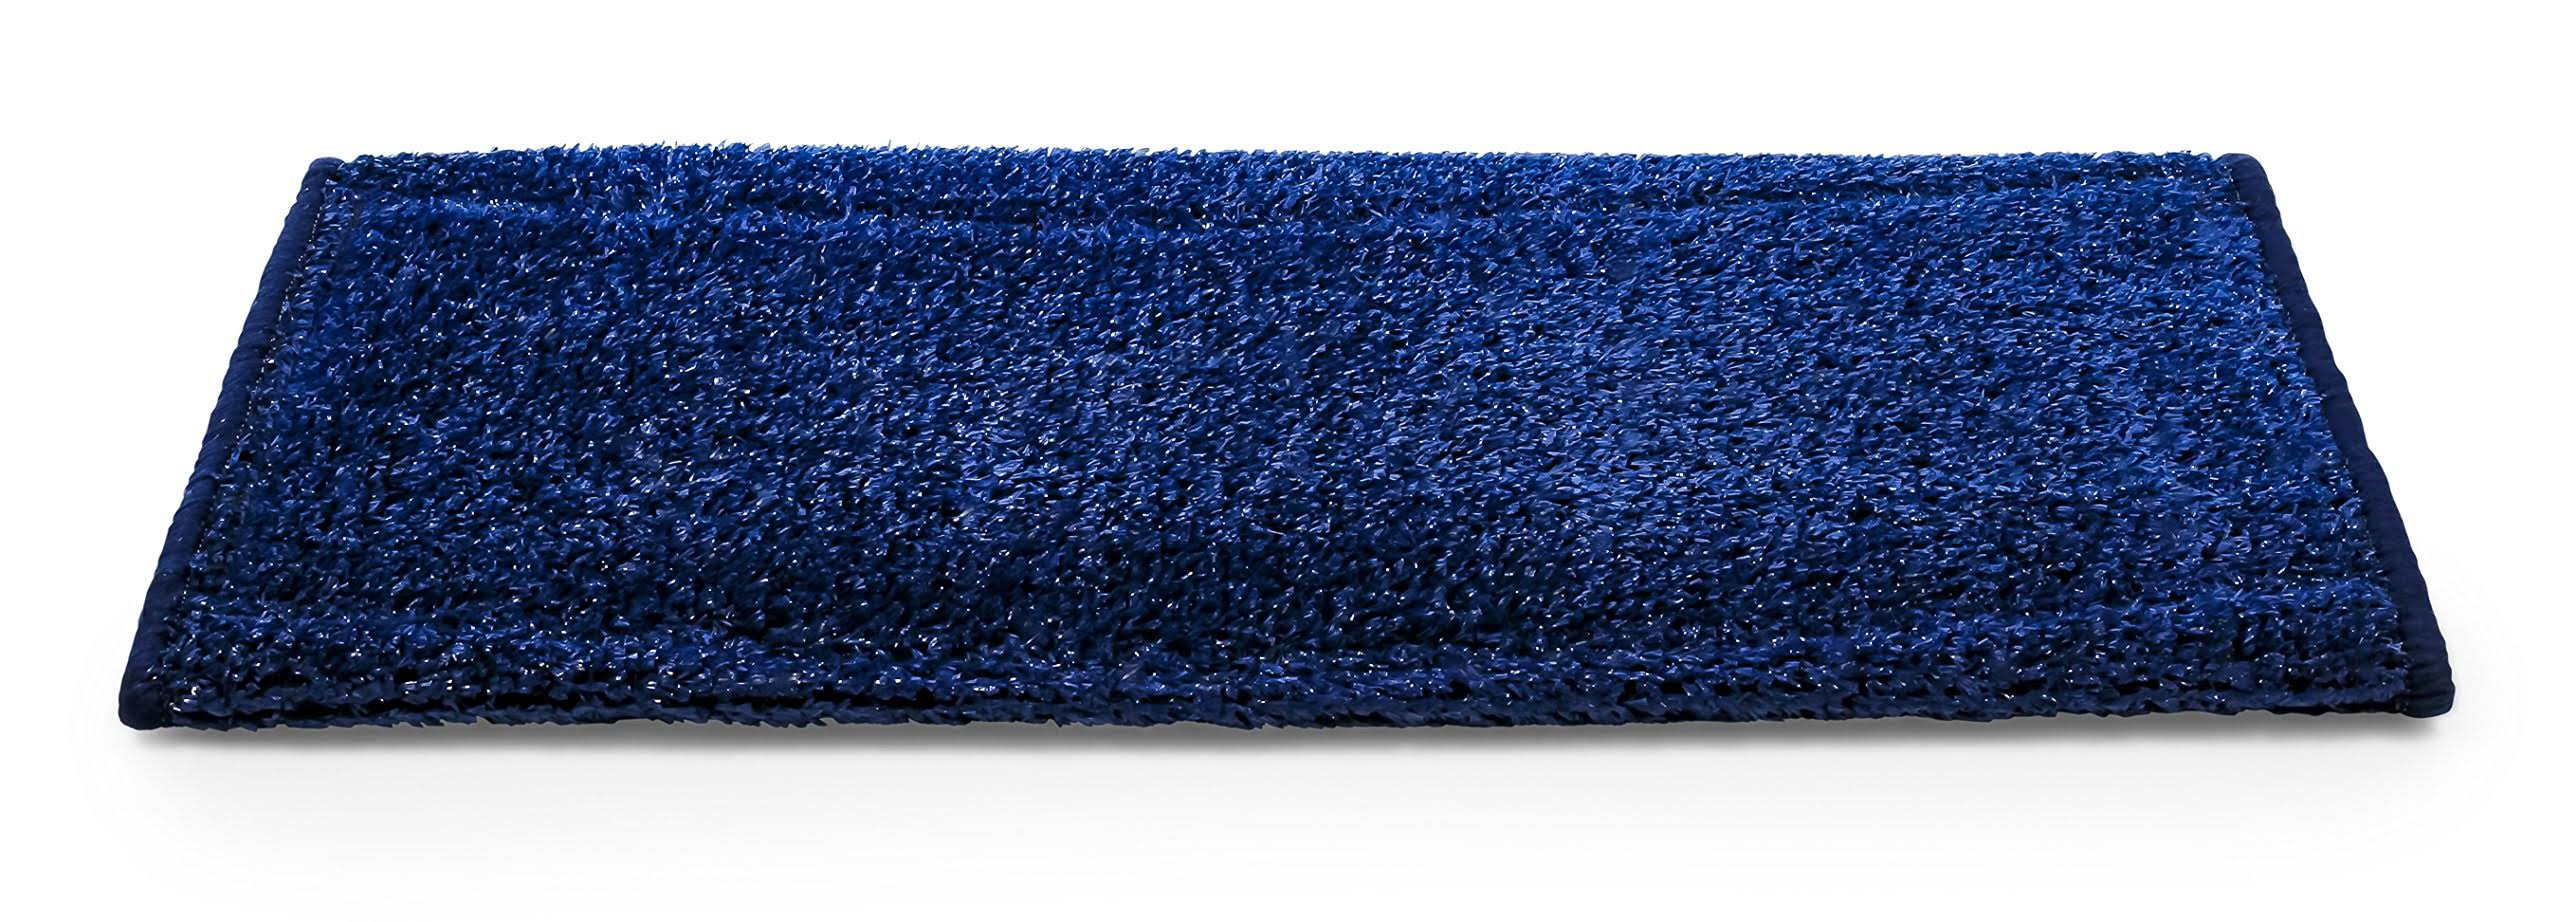 Camco 42948 Premium Radius Wrap Around Step Rug, Turf Material (22 inch Wide), Blue